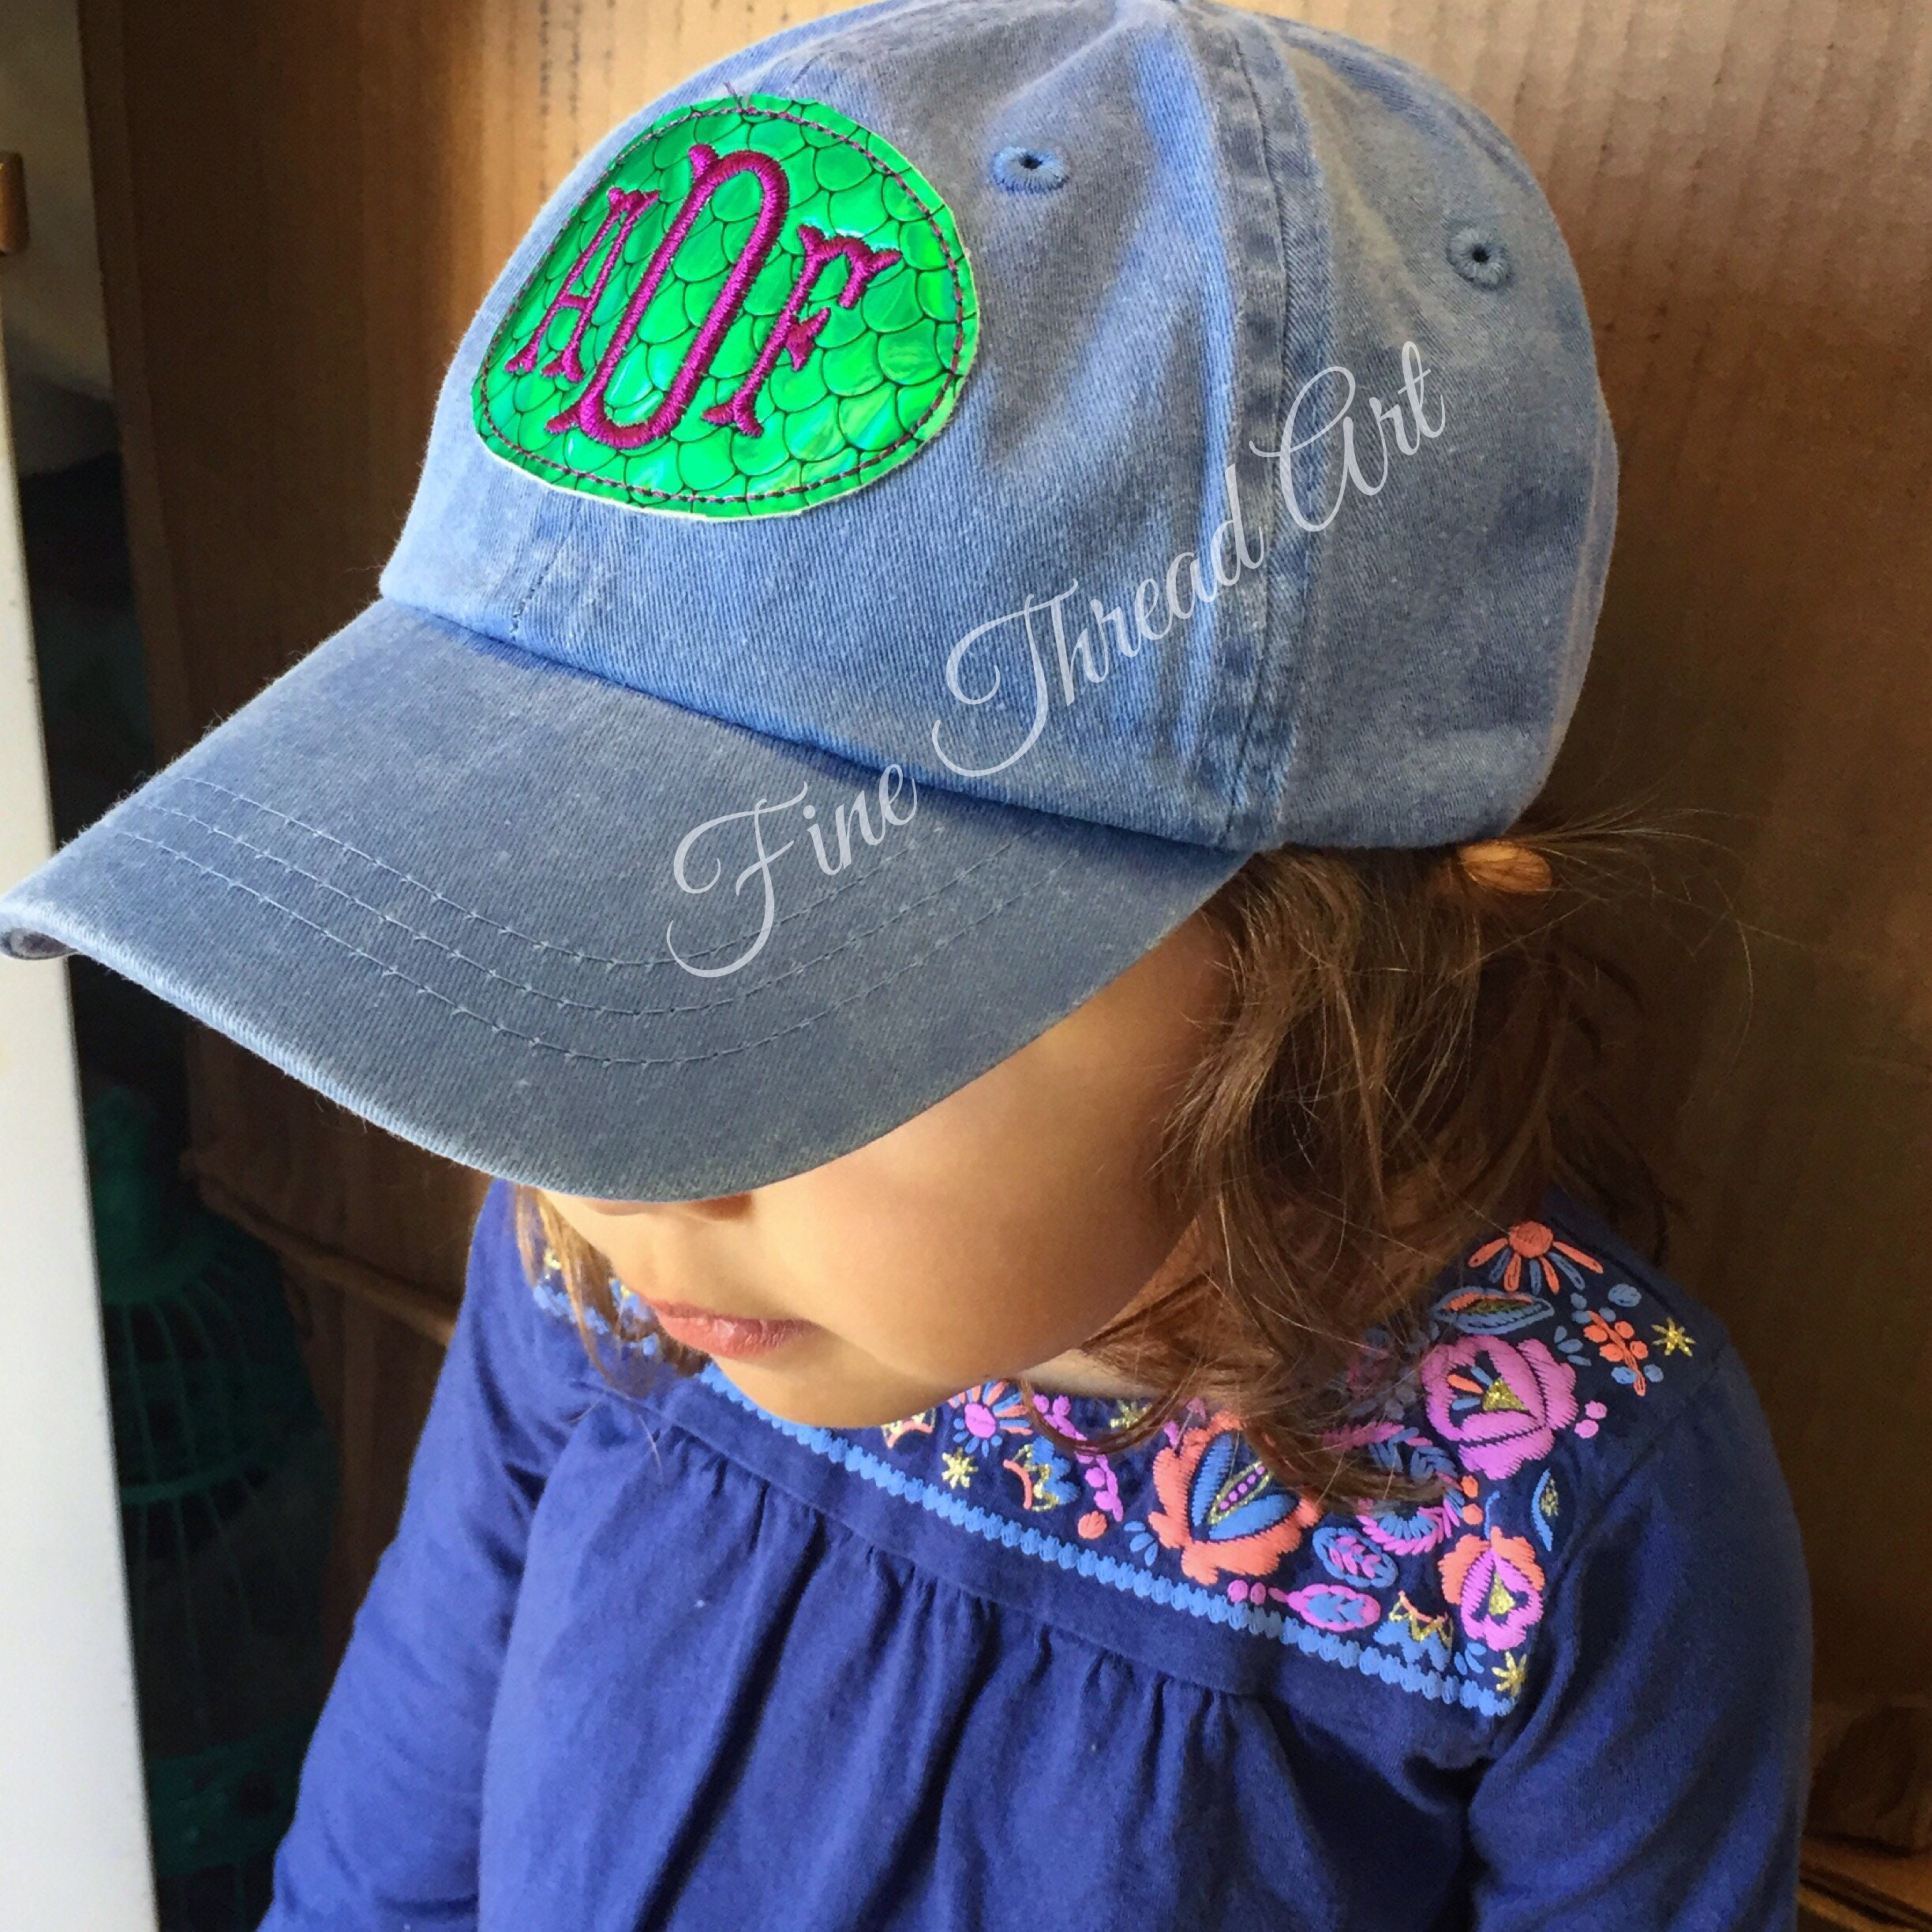 fb64a1d025c KIDS Mermaid Scale Monogram Baseball Cap Hat Girl Youth Size